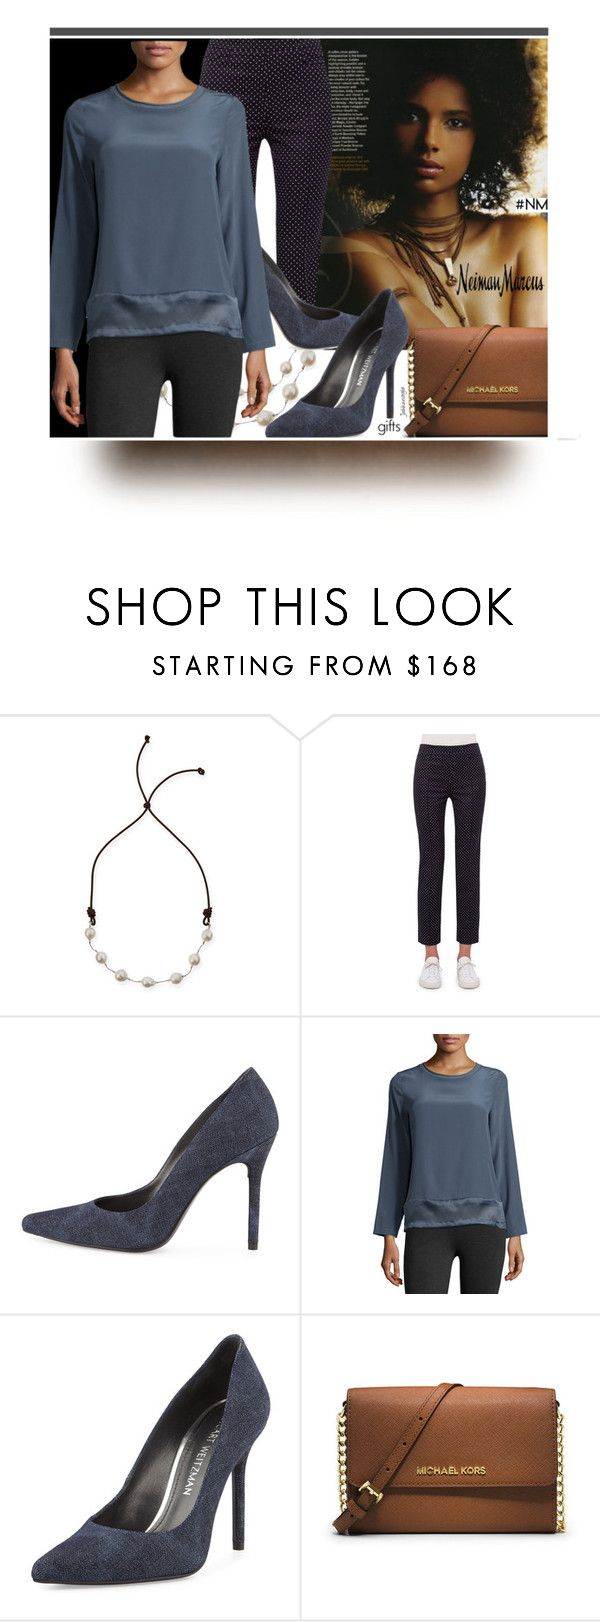 """The Holiday Wish List With Neiman Marcus: Contest Entry"" by jahkun ❤ liked on Polyvore featuring Margo Morrison New York, Neiman Marcus, Akris Punto, Stuart Weitzman, Peserico and MICHAEL Michael Kors"